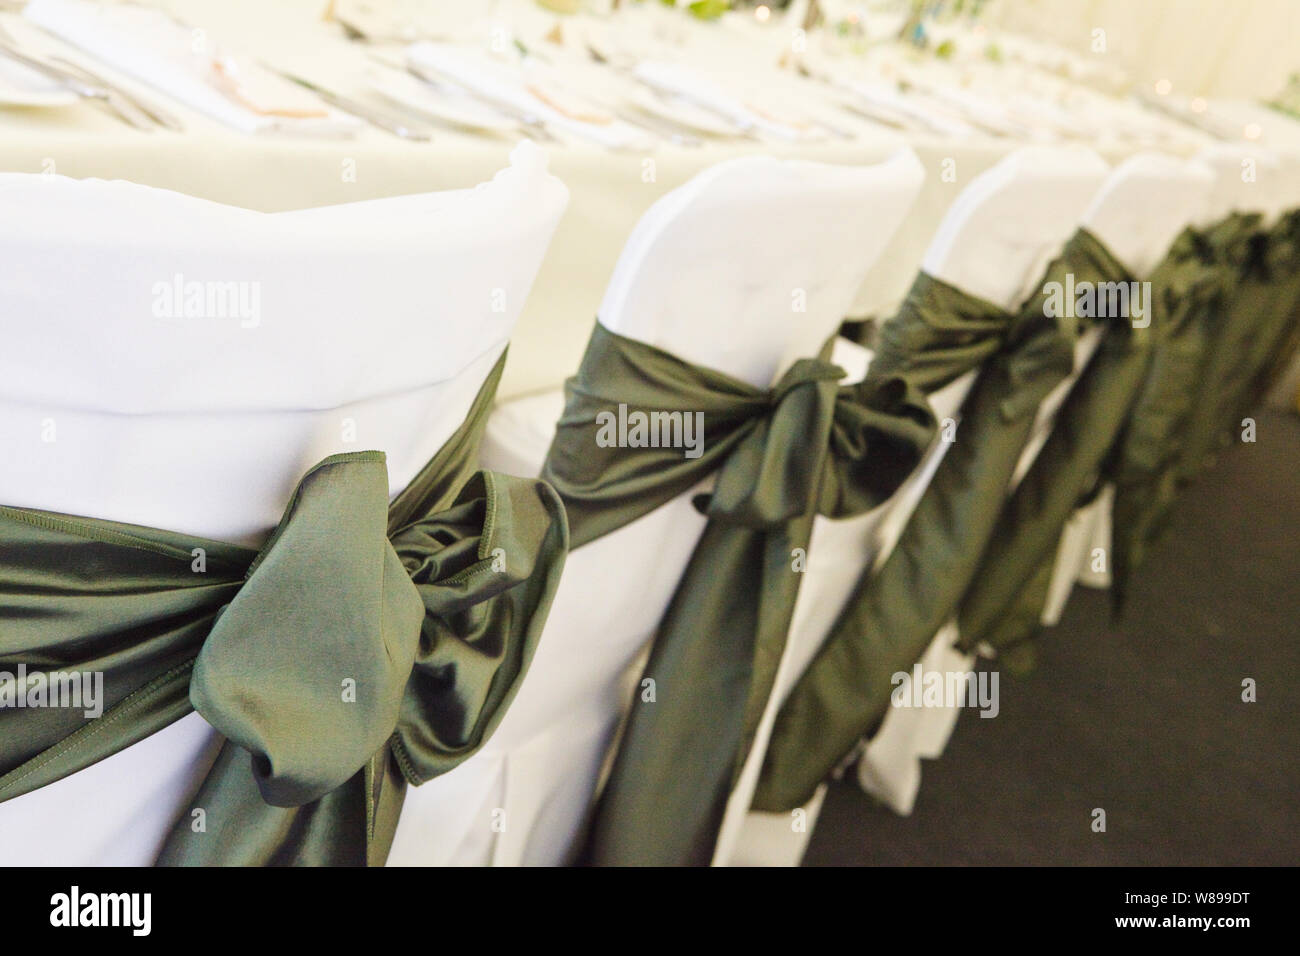 Swell White Wedding Chair Covers With Green Satin Bows Stock Photo Inzonedesignstudio Interior Chair Design Inzonedesignstudiocom